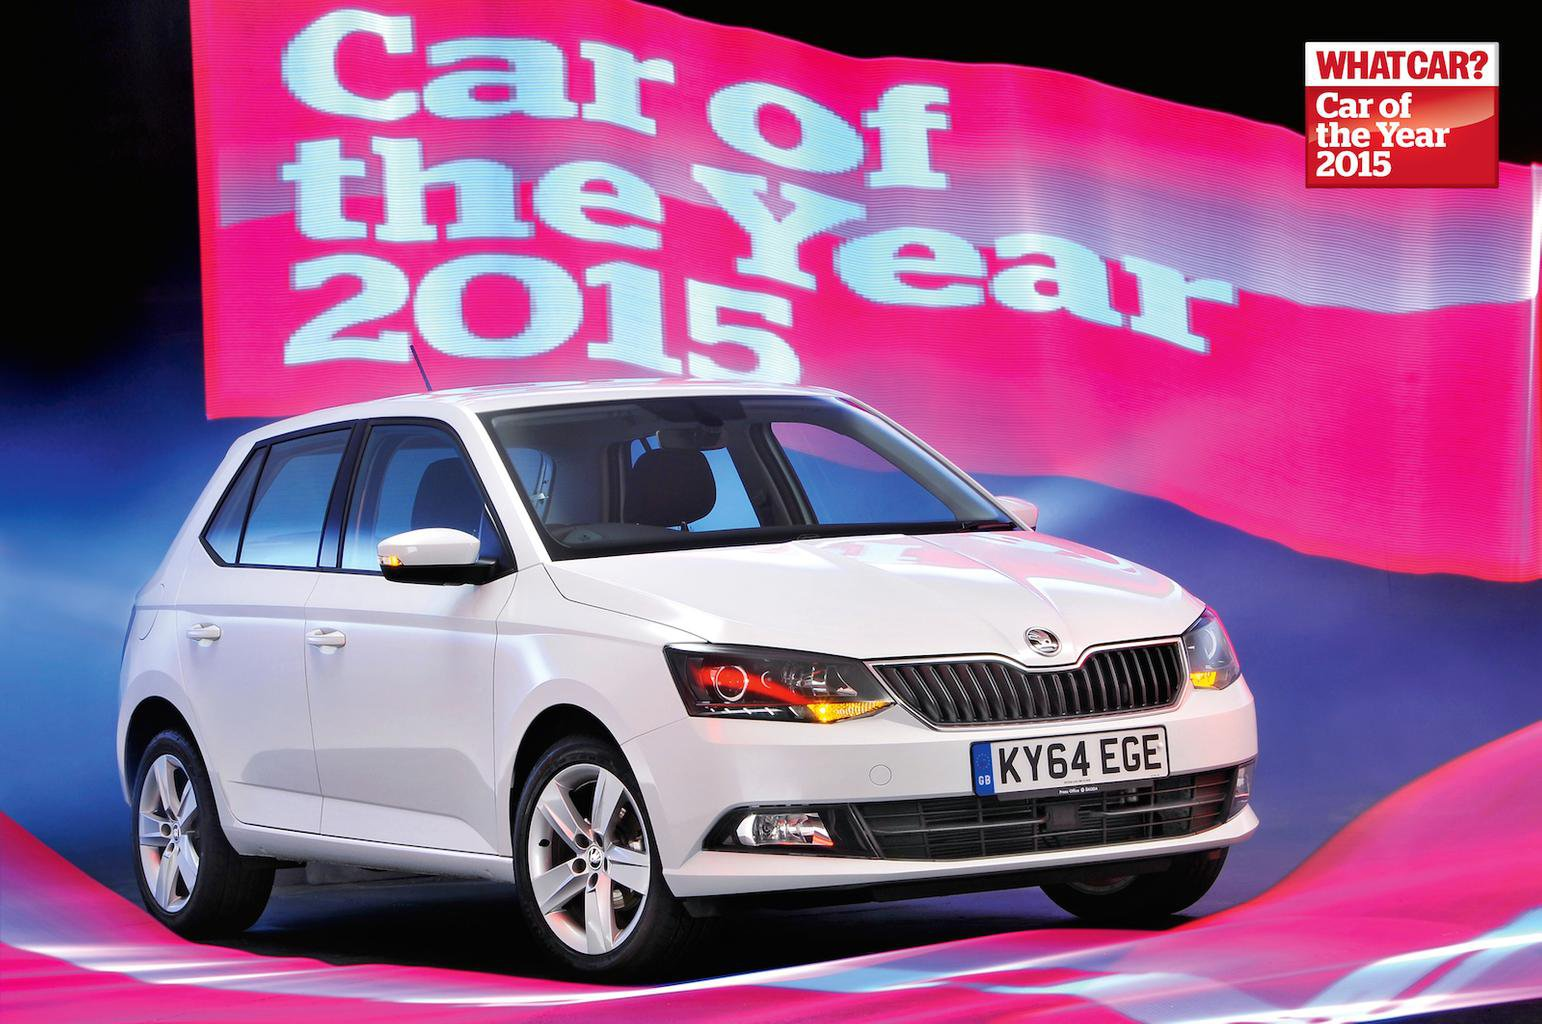 Buying used: Car of the Year winners from 2015